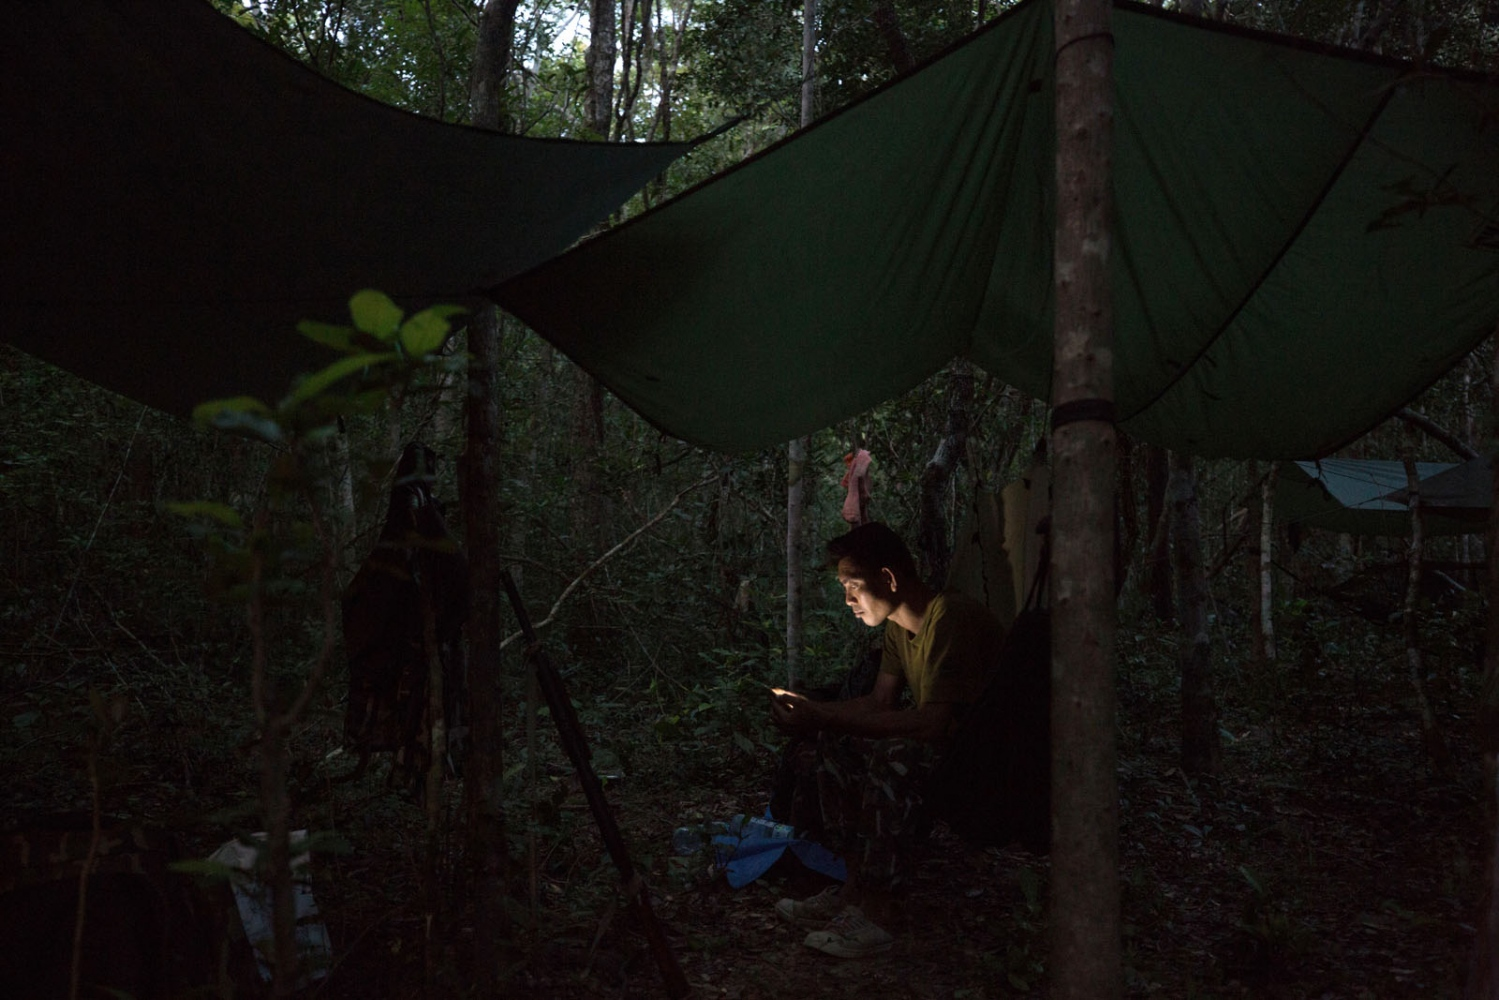 Sompob Khamprakon, 37, rests at camp looking at photos on his cell phone on the second night of a patrol in Ta Praya National Park in Eastern Thailand. This area is very close to the Cambodian border and sees a lot of poachers and illegal loggers operating within its boundaries. Ta Praya National Park, Sa Kaew Province - September 2018